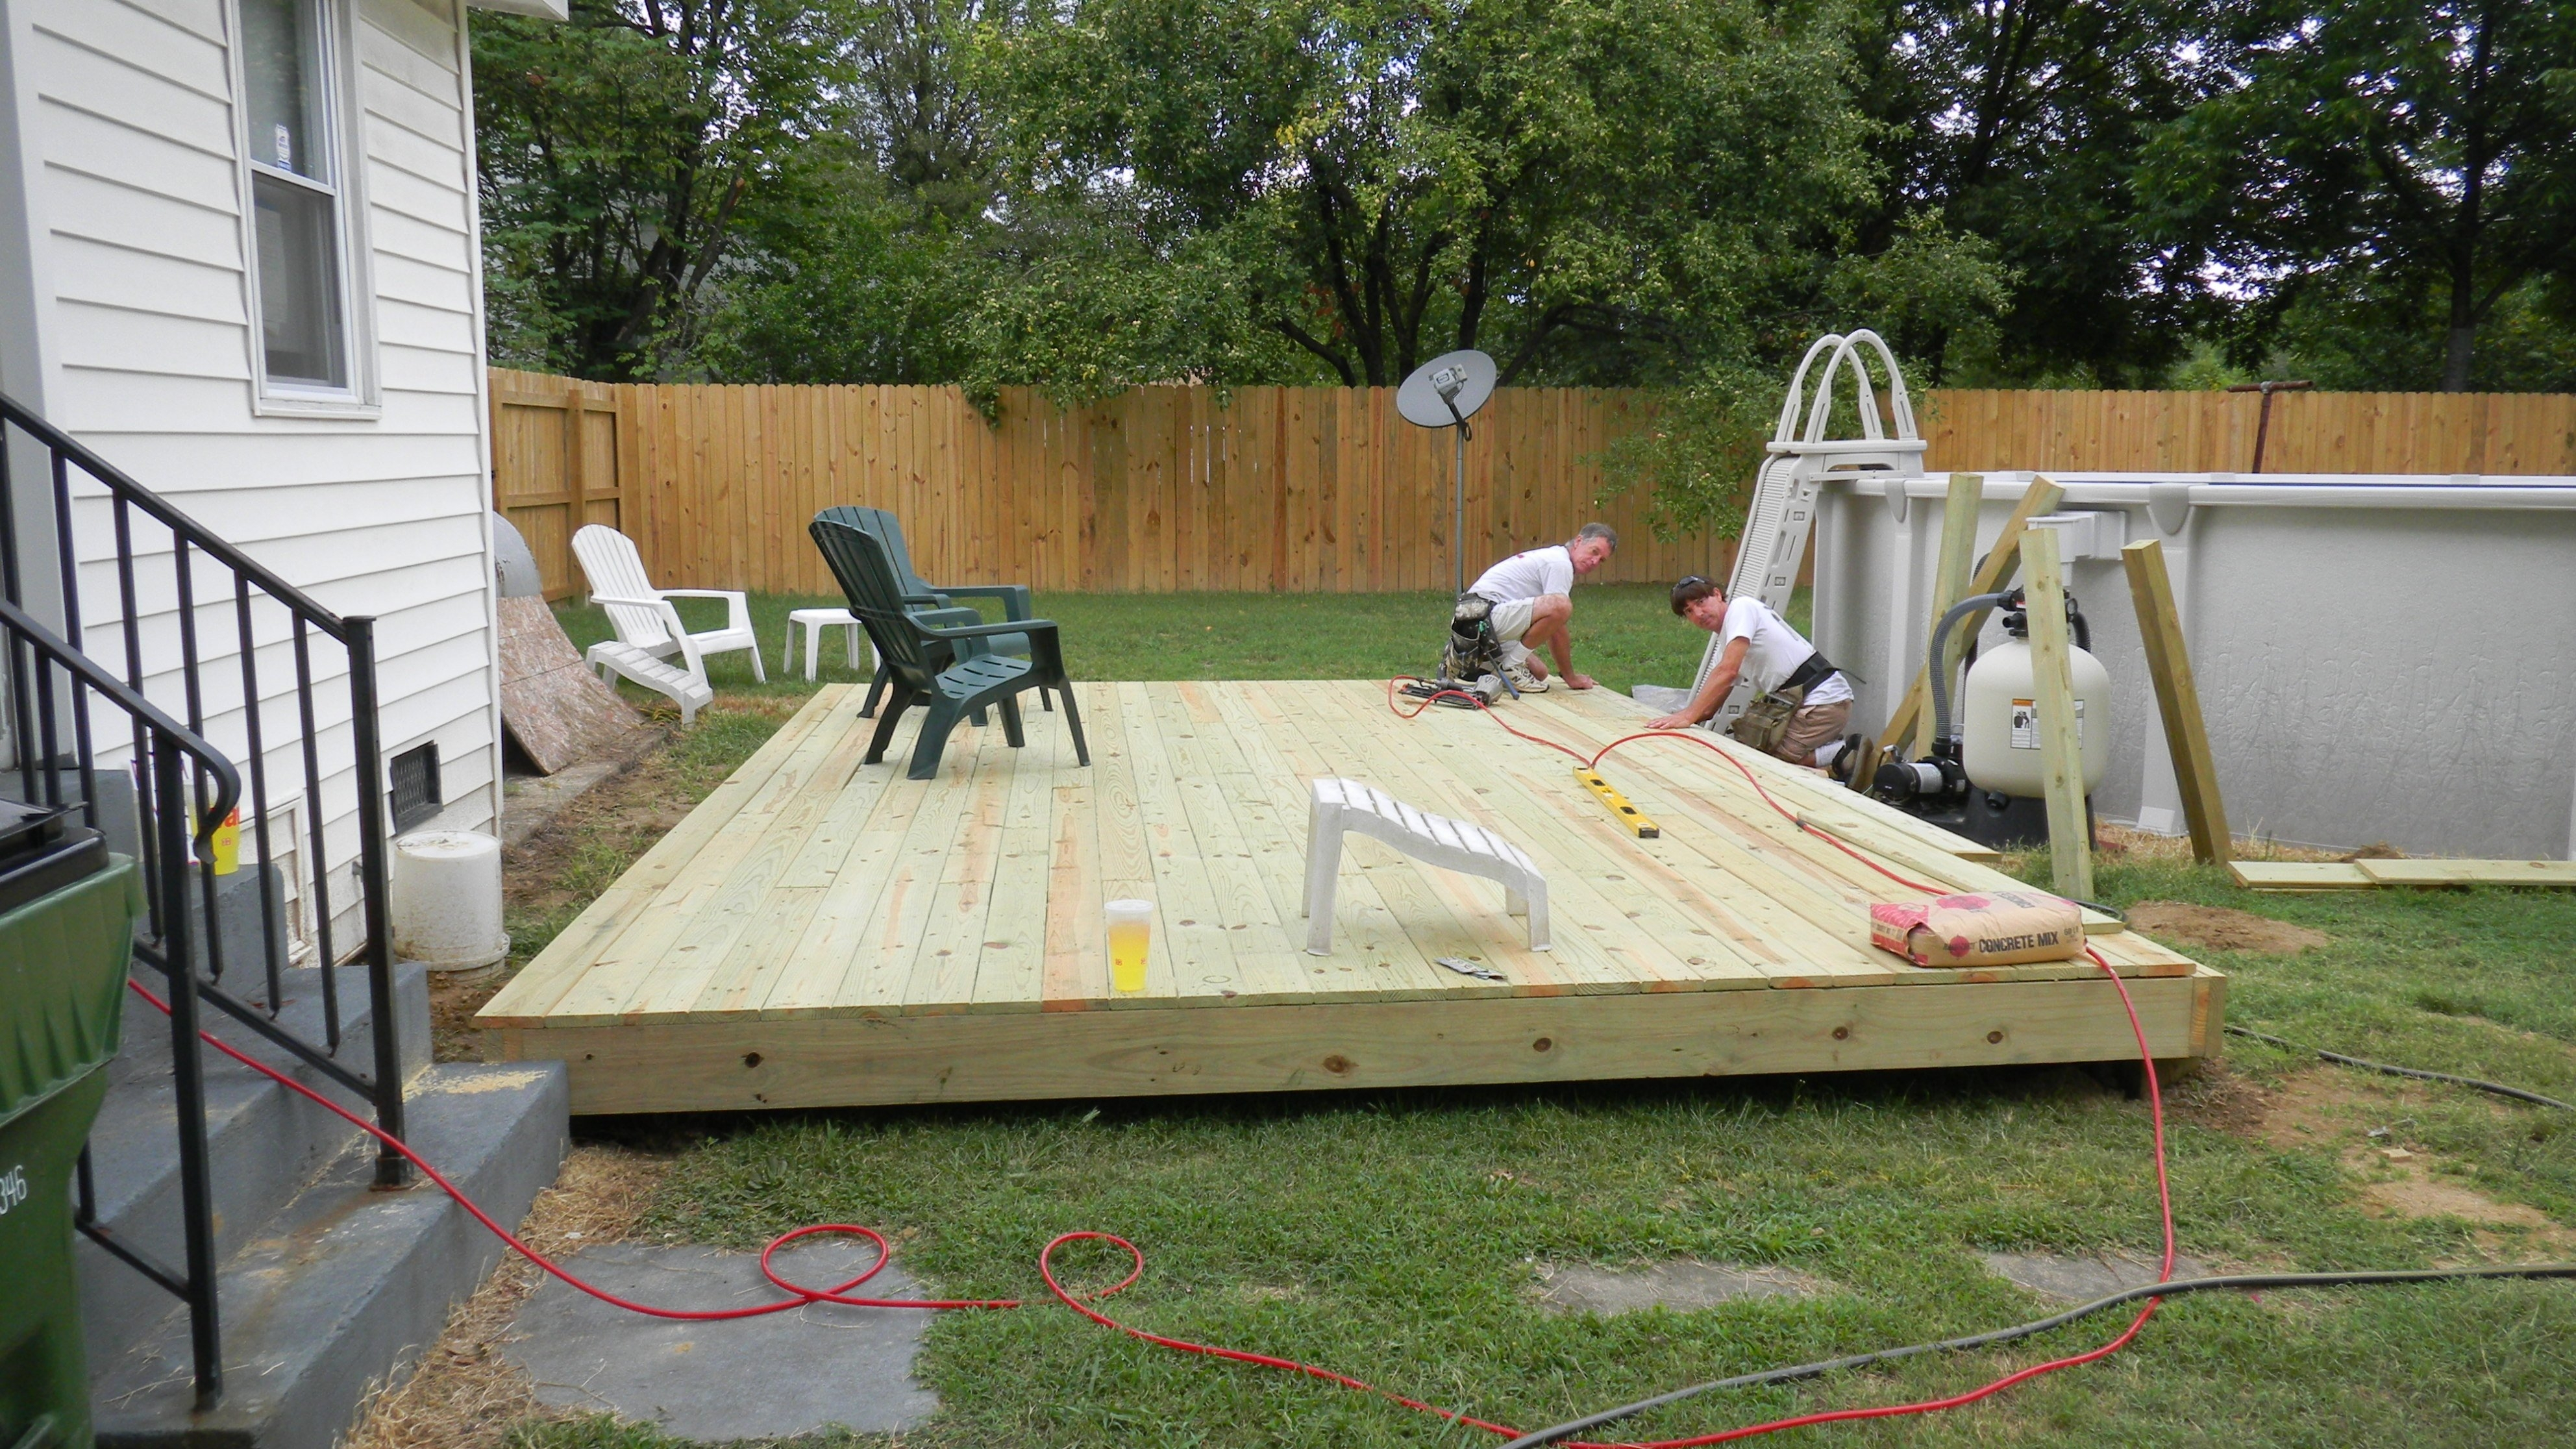 15.SIMPHOME.COM popular low back deck idea on a budget with 10 cheap backyard deck ideas